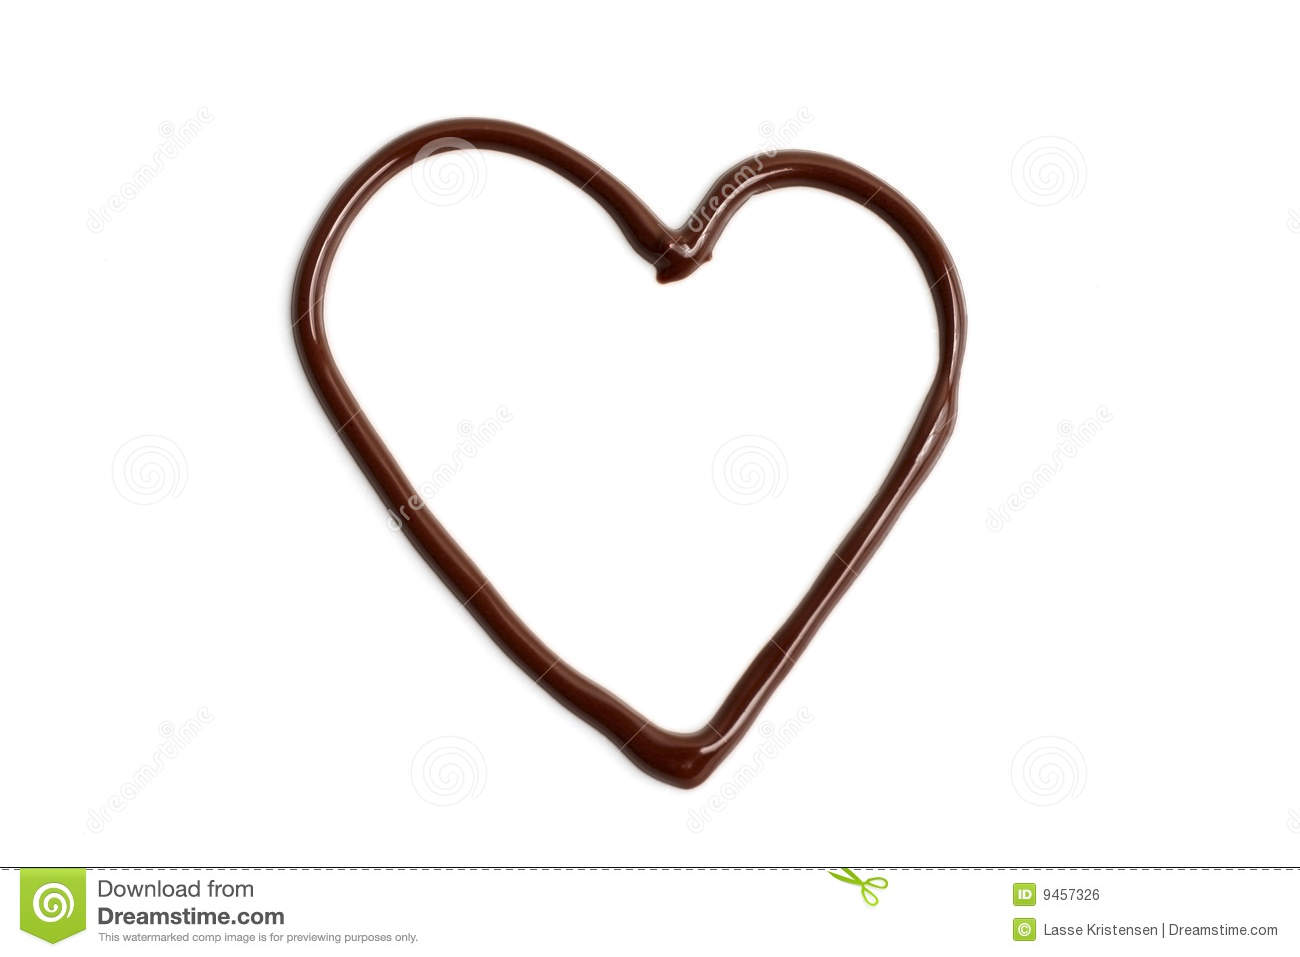 Chocolate Love Heart Royalty Free Stock Image - Image: 9457326